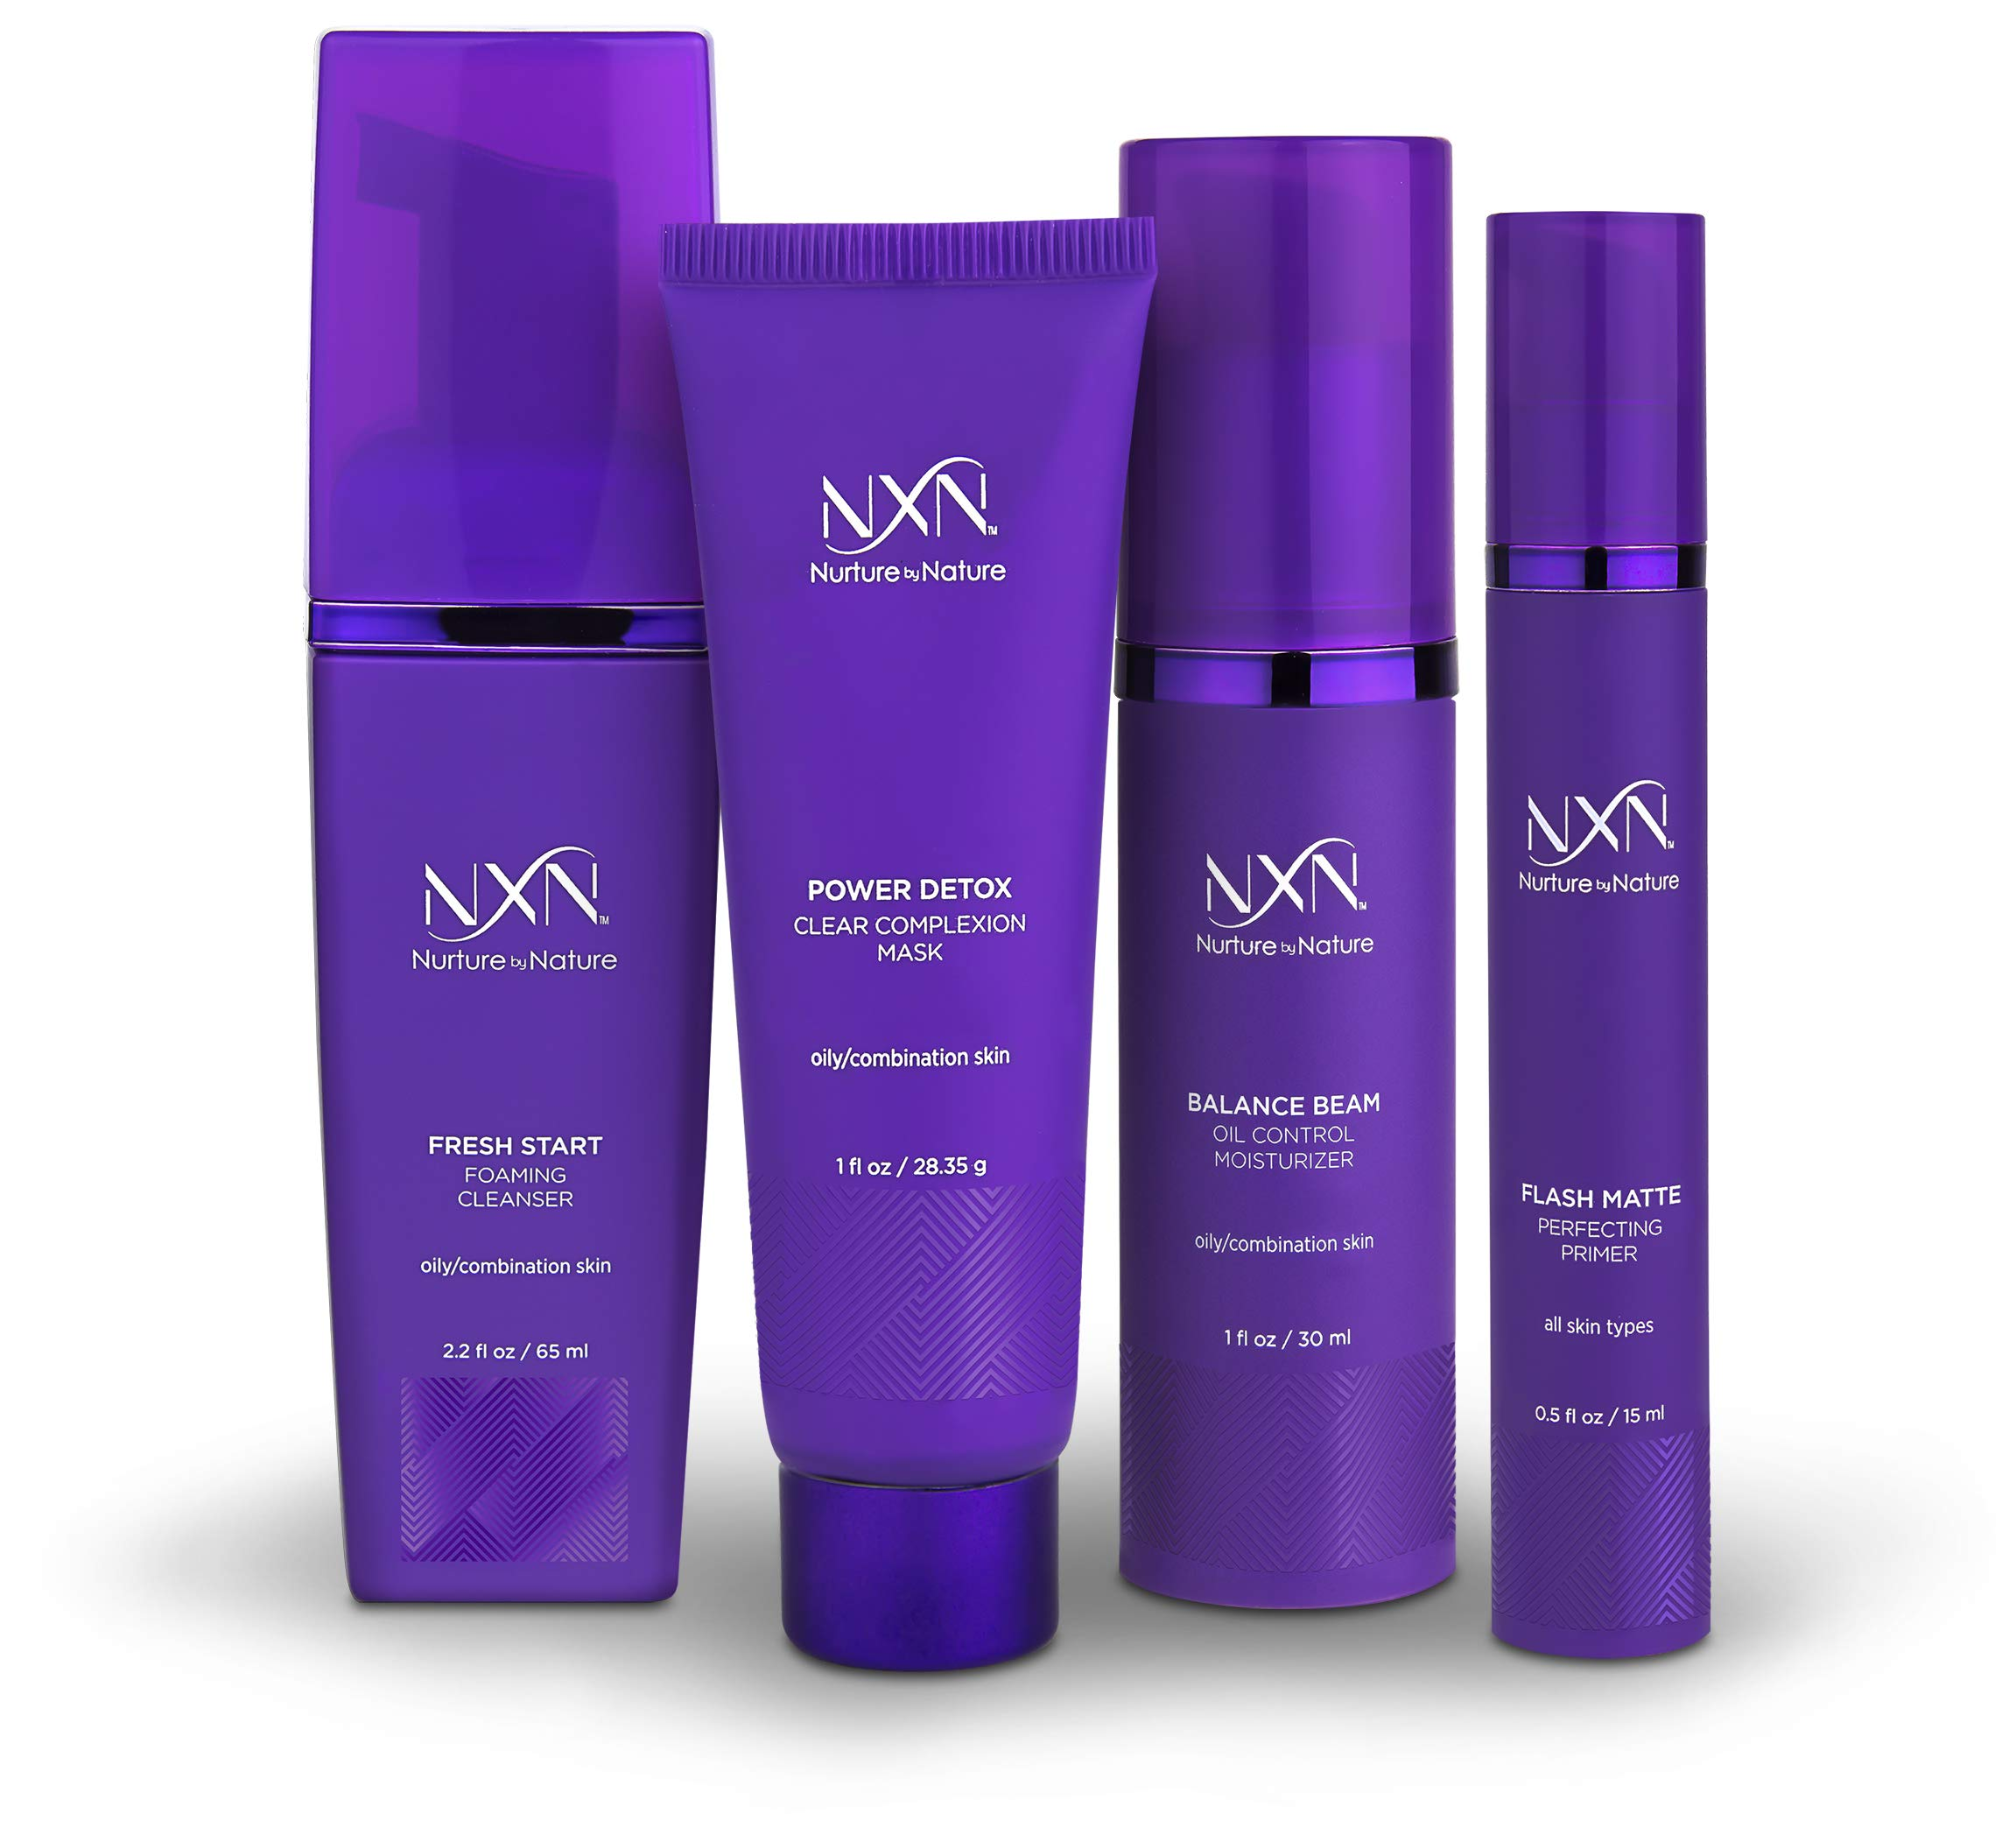 NxN Oil Control Daily 4-Piece Skin Care System, With Clinically Proven Vitamin C, Natural Retinol by Nurture by Nature